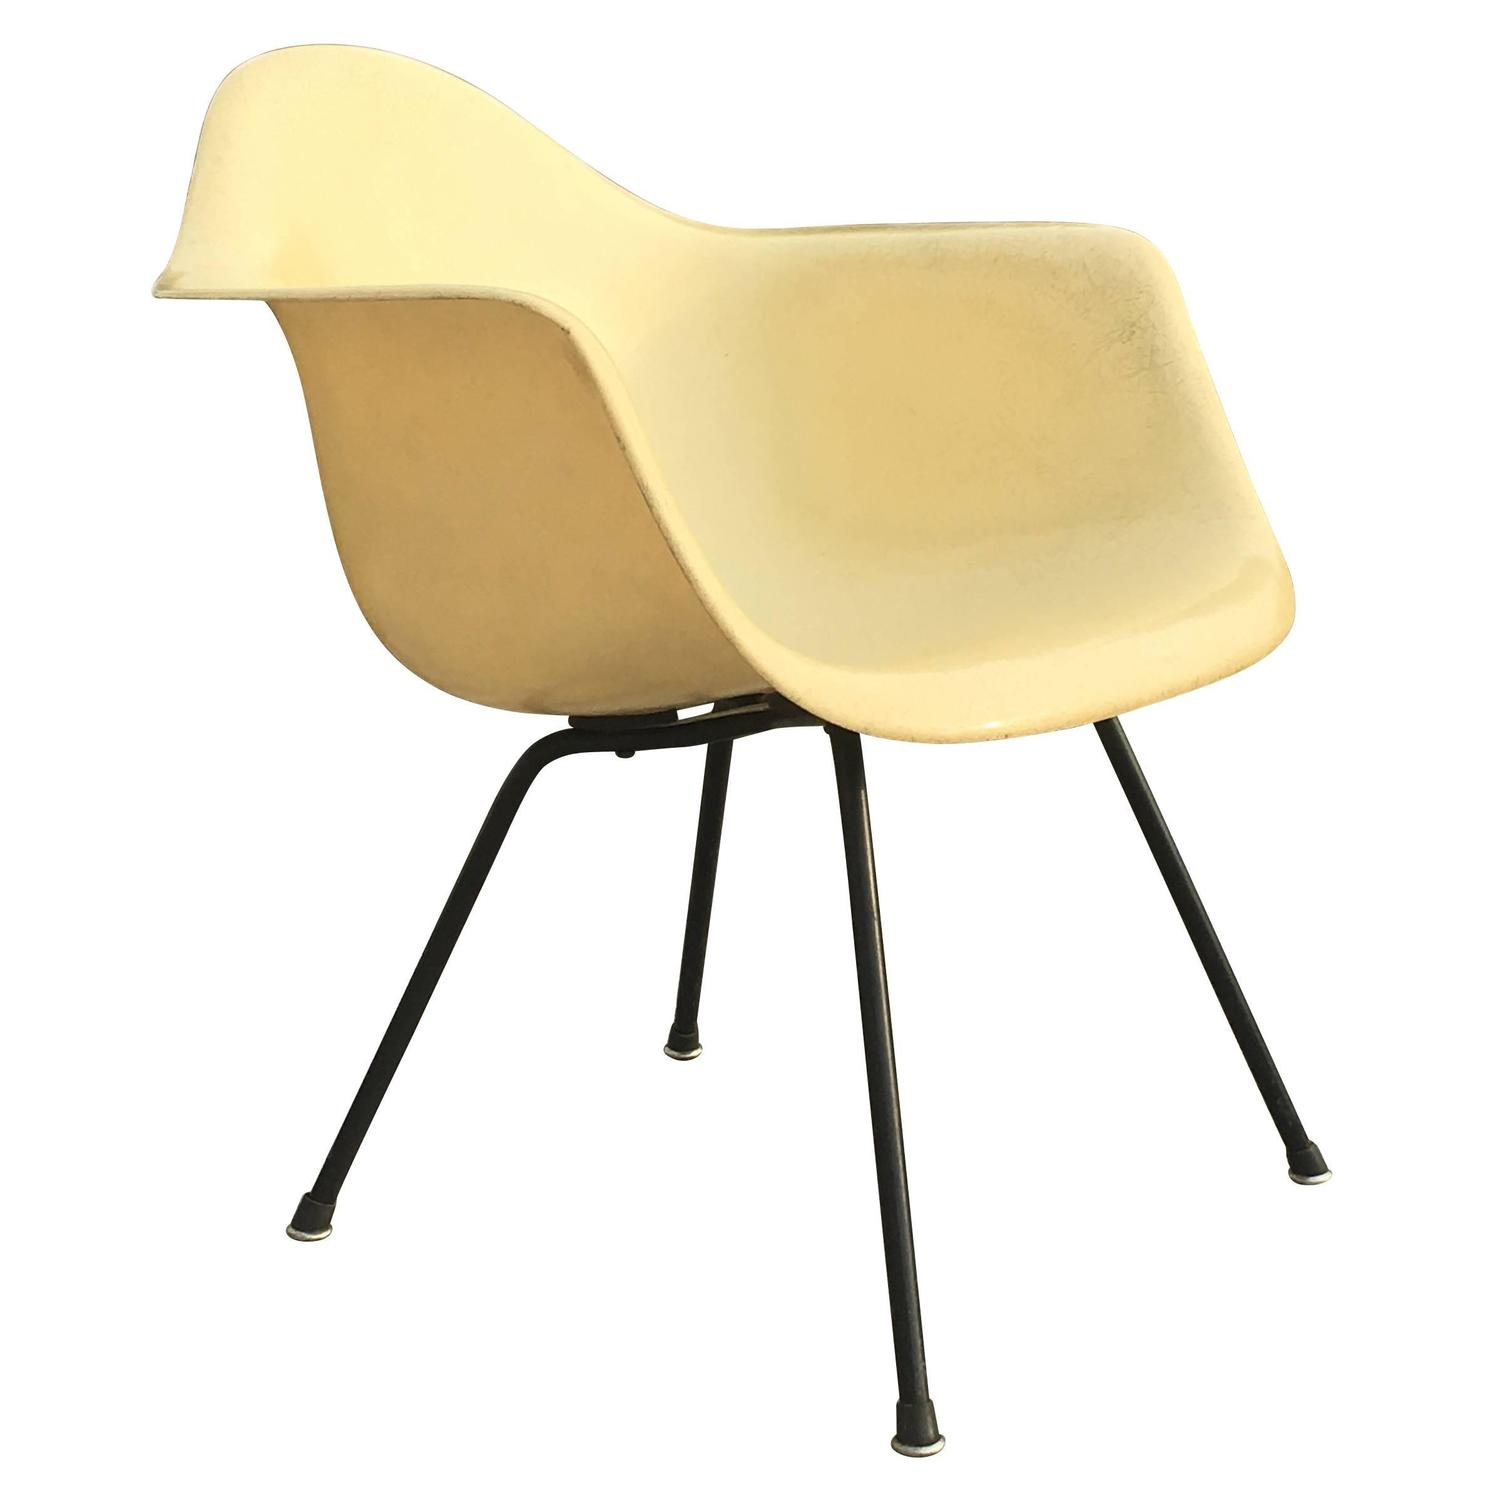 Herman Miller Eames Zenith LAX Lounge Chair in Parchment at 1stdibs